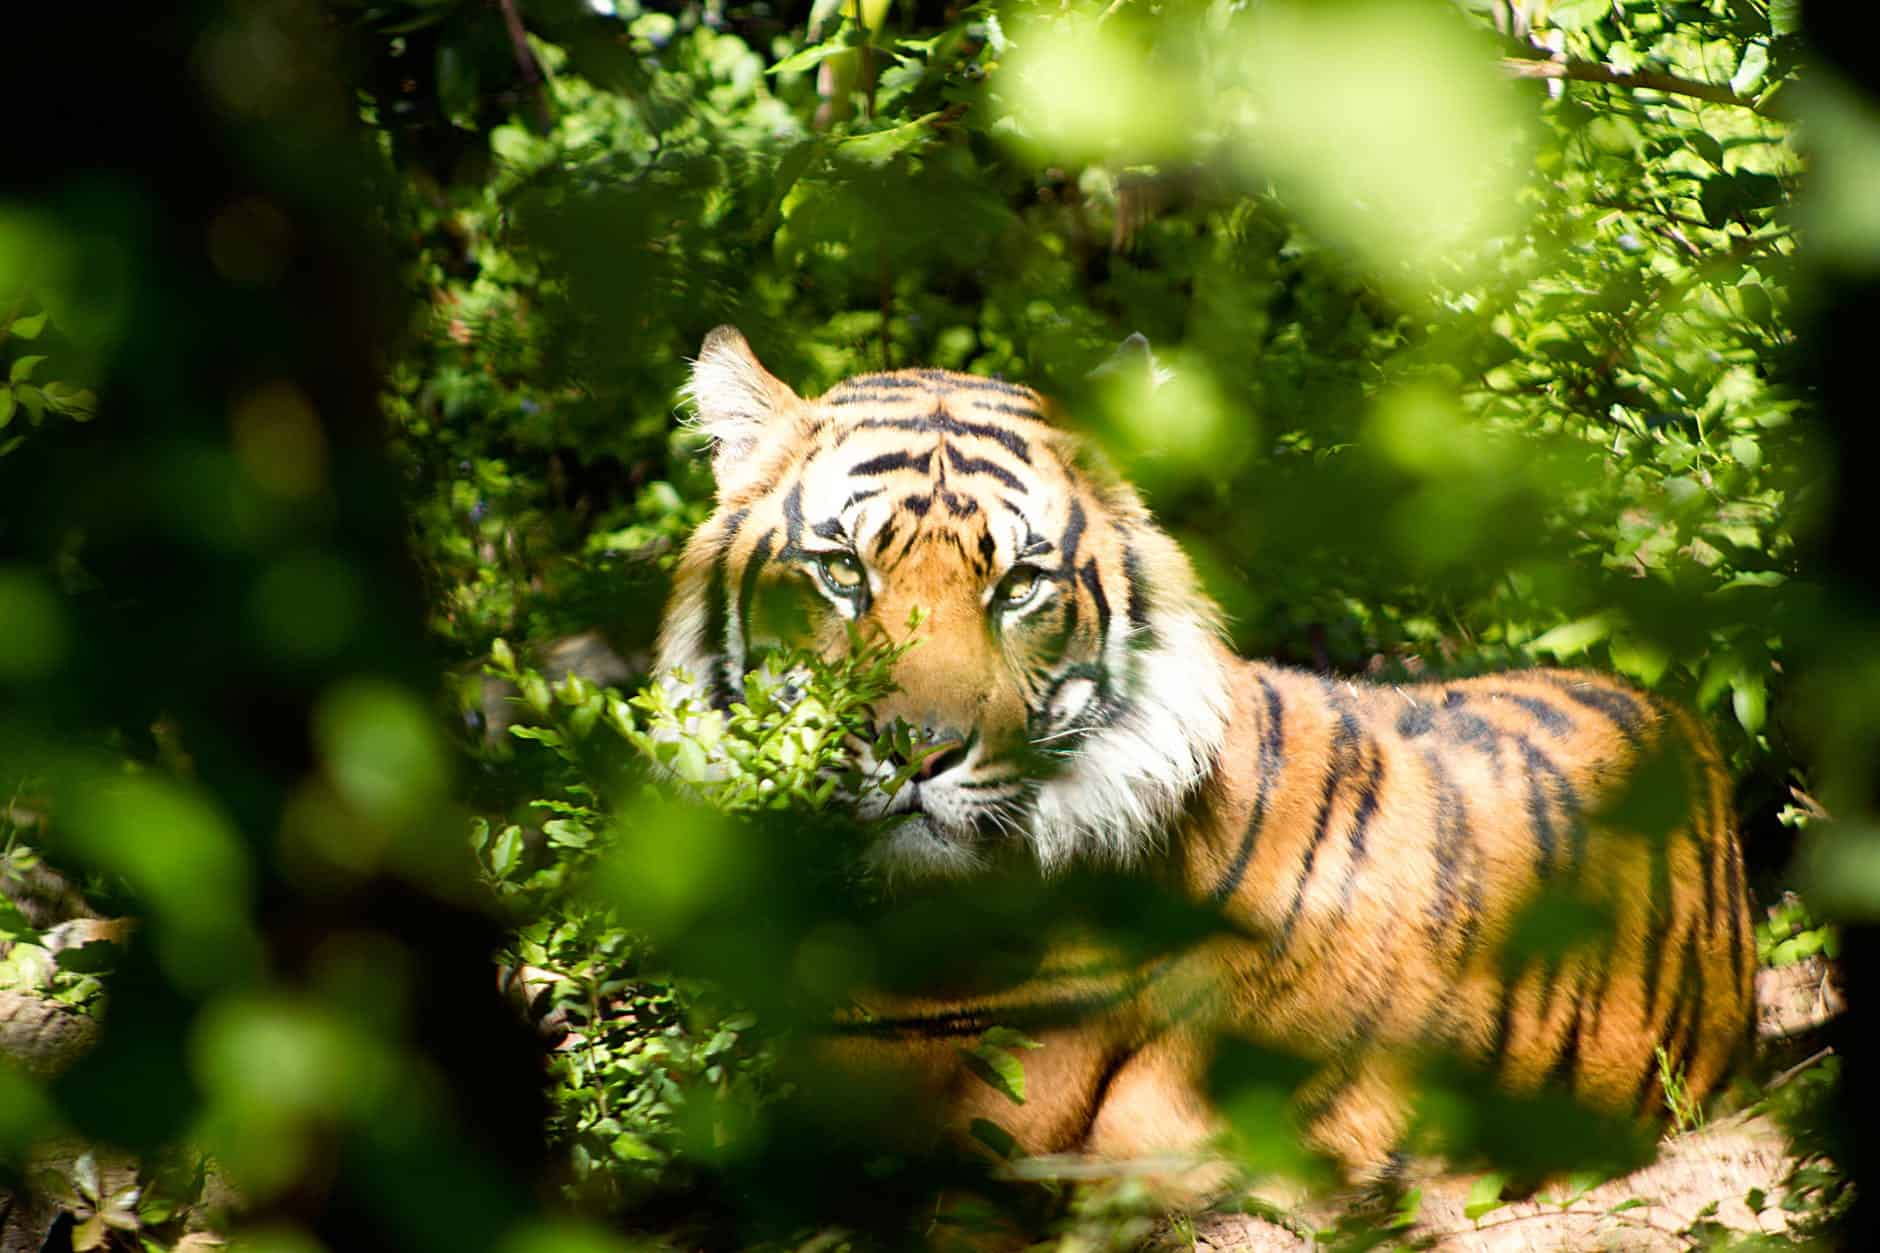 What are the interesting facts about Bengal Tiger?